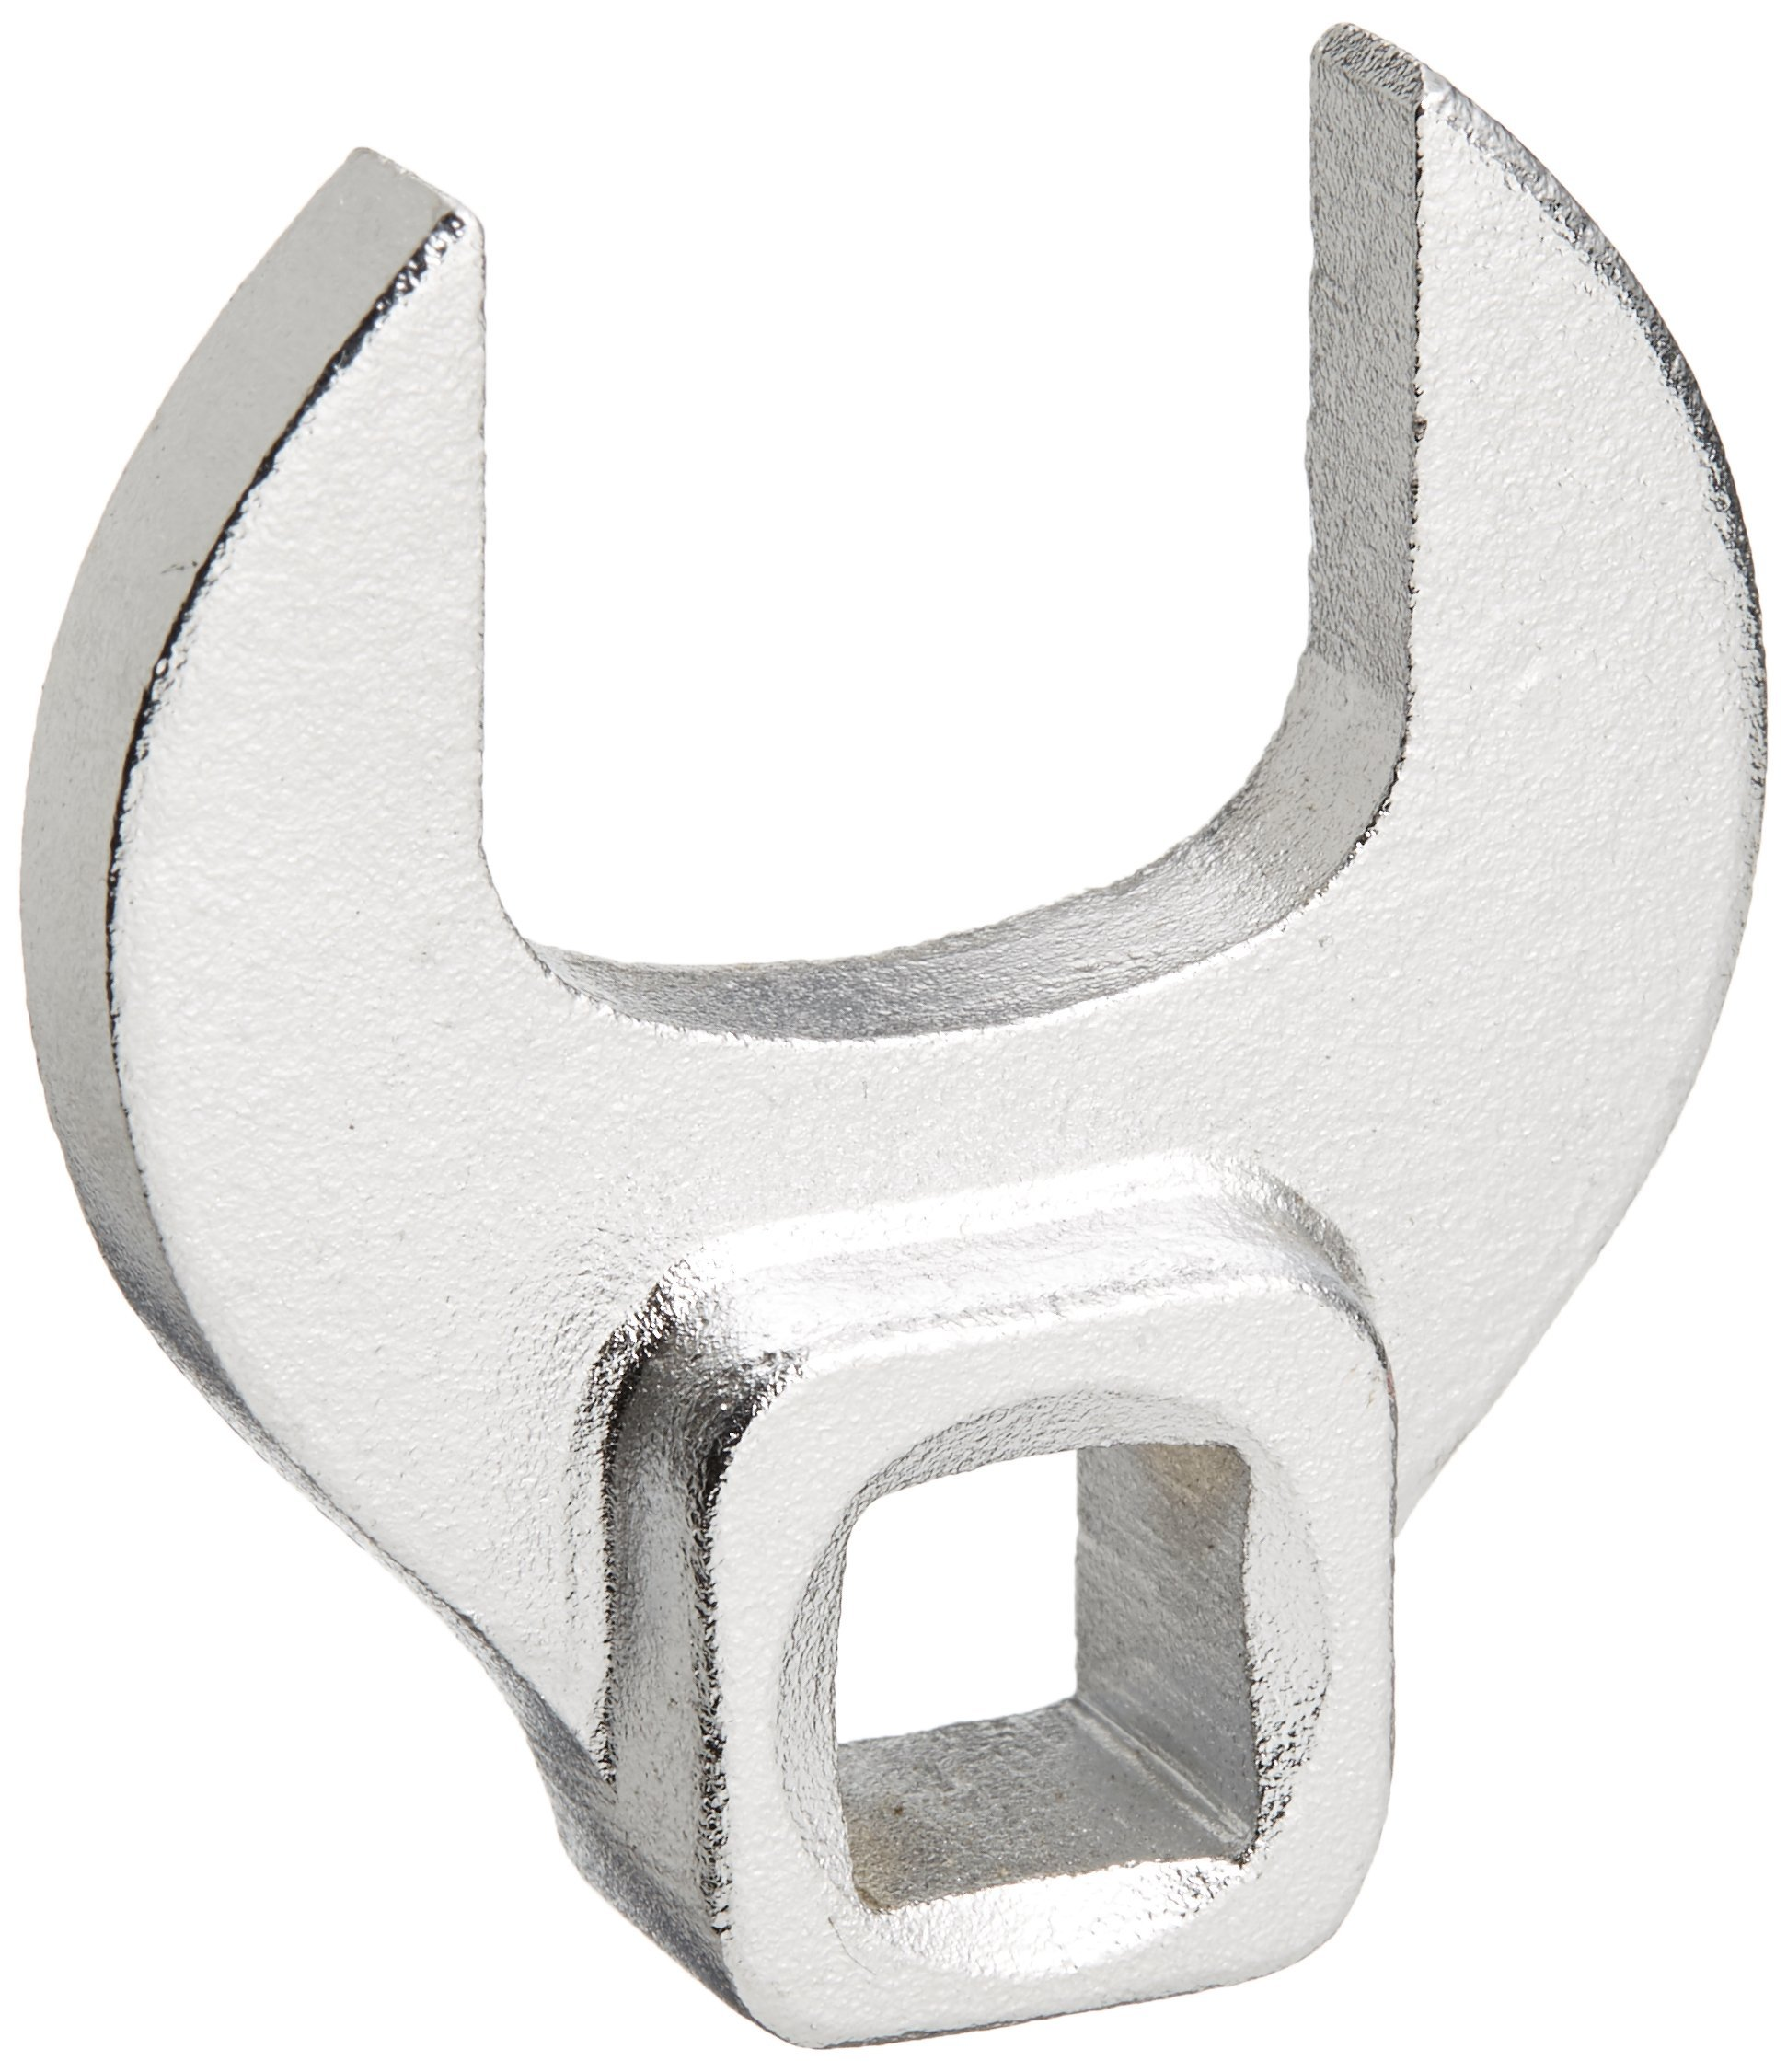 Blackhawk By Proto BCF-22M 22mm Drive Crowfoot Wrench, 3/8-Inch